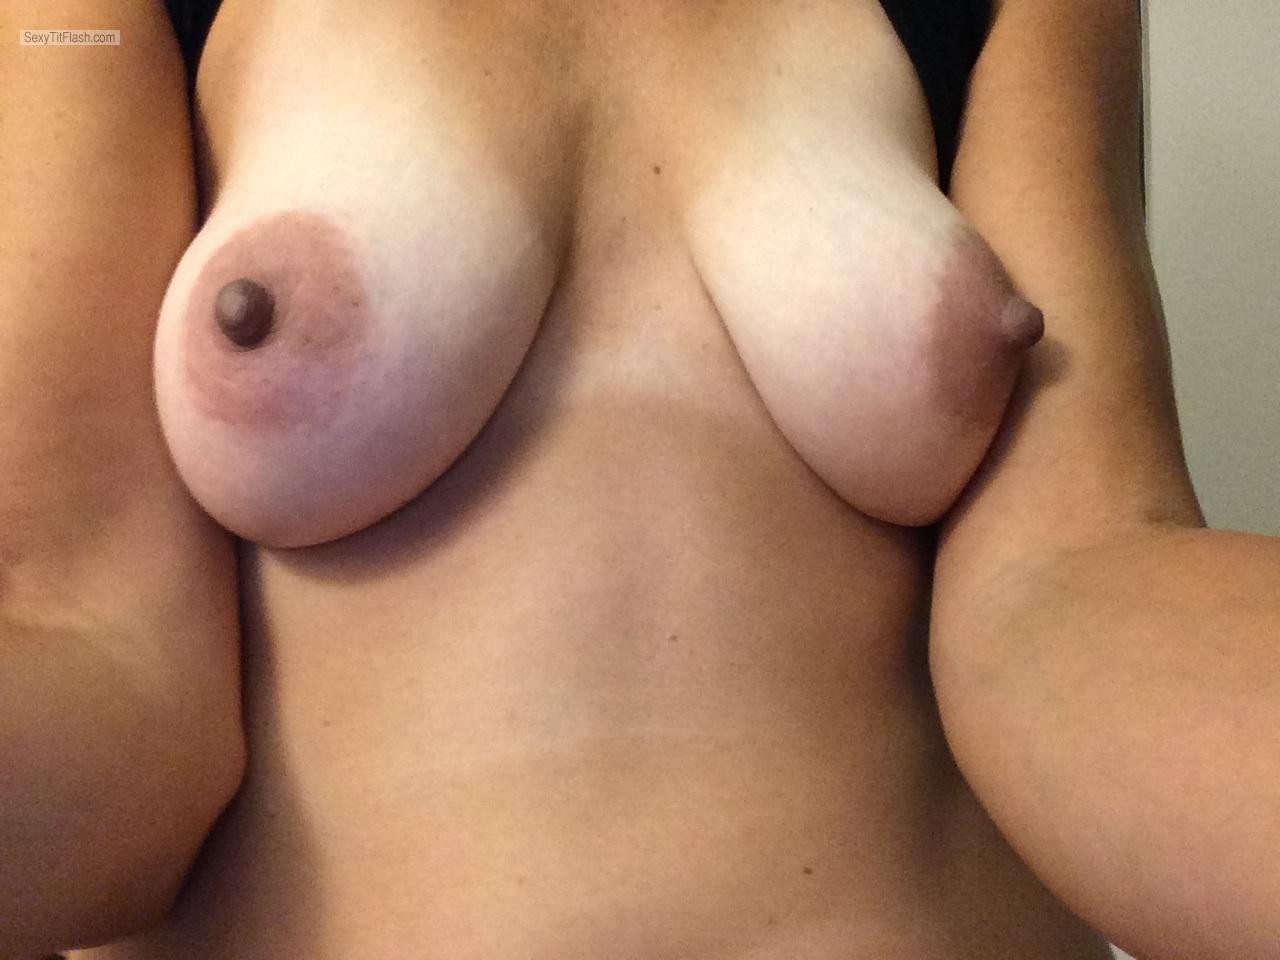 Tit Flash: My Tanlined Small Tits (Selfie) - Handymandy from United States